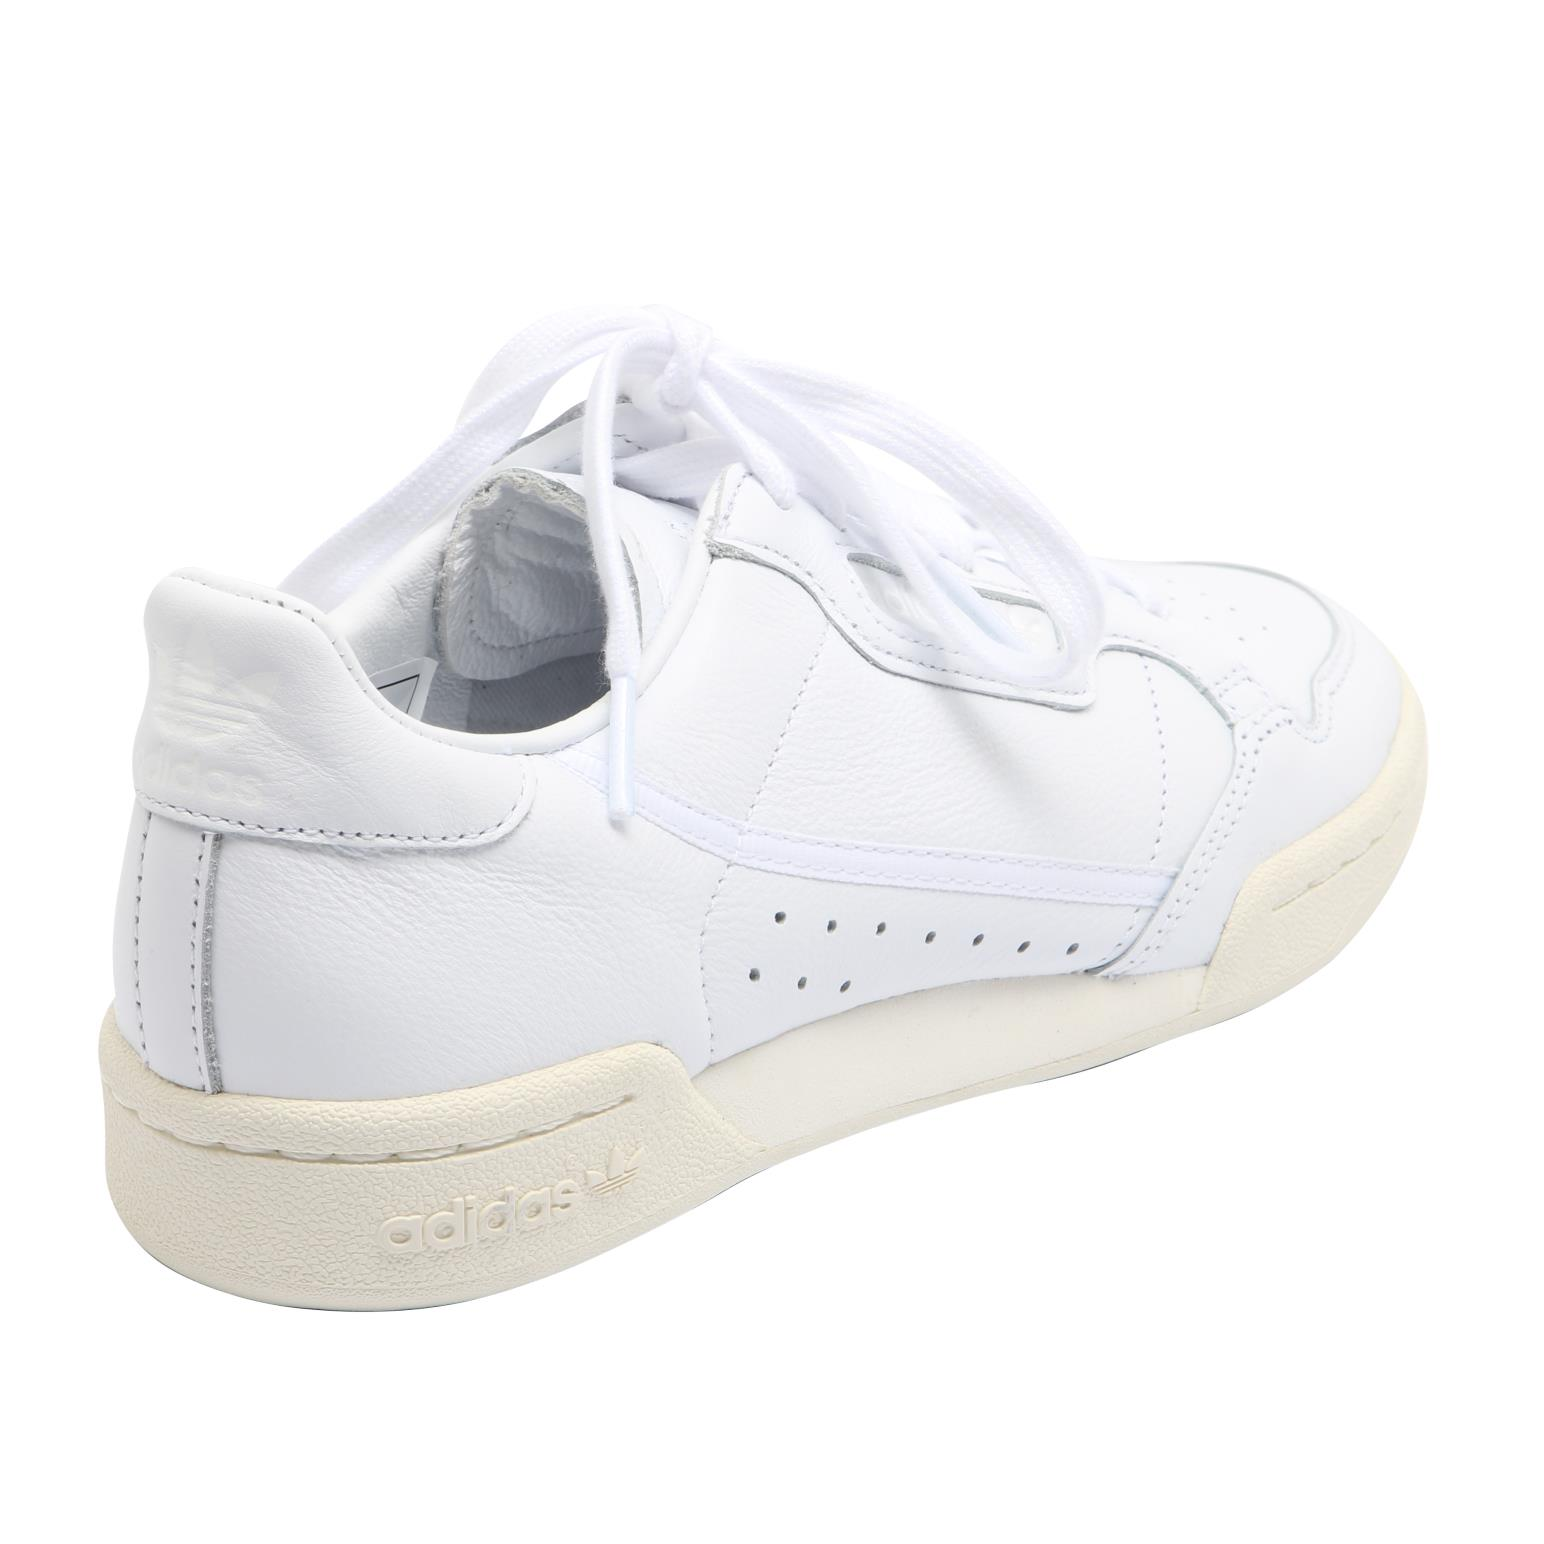 Details about MENS ADIDAS ORIGINALS CONTINENTAL 80 CREAM LEATHER RETRO SPORTS TRAINERS SIZE 6